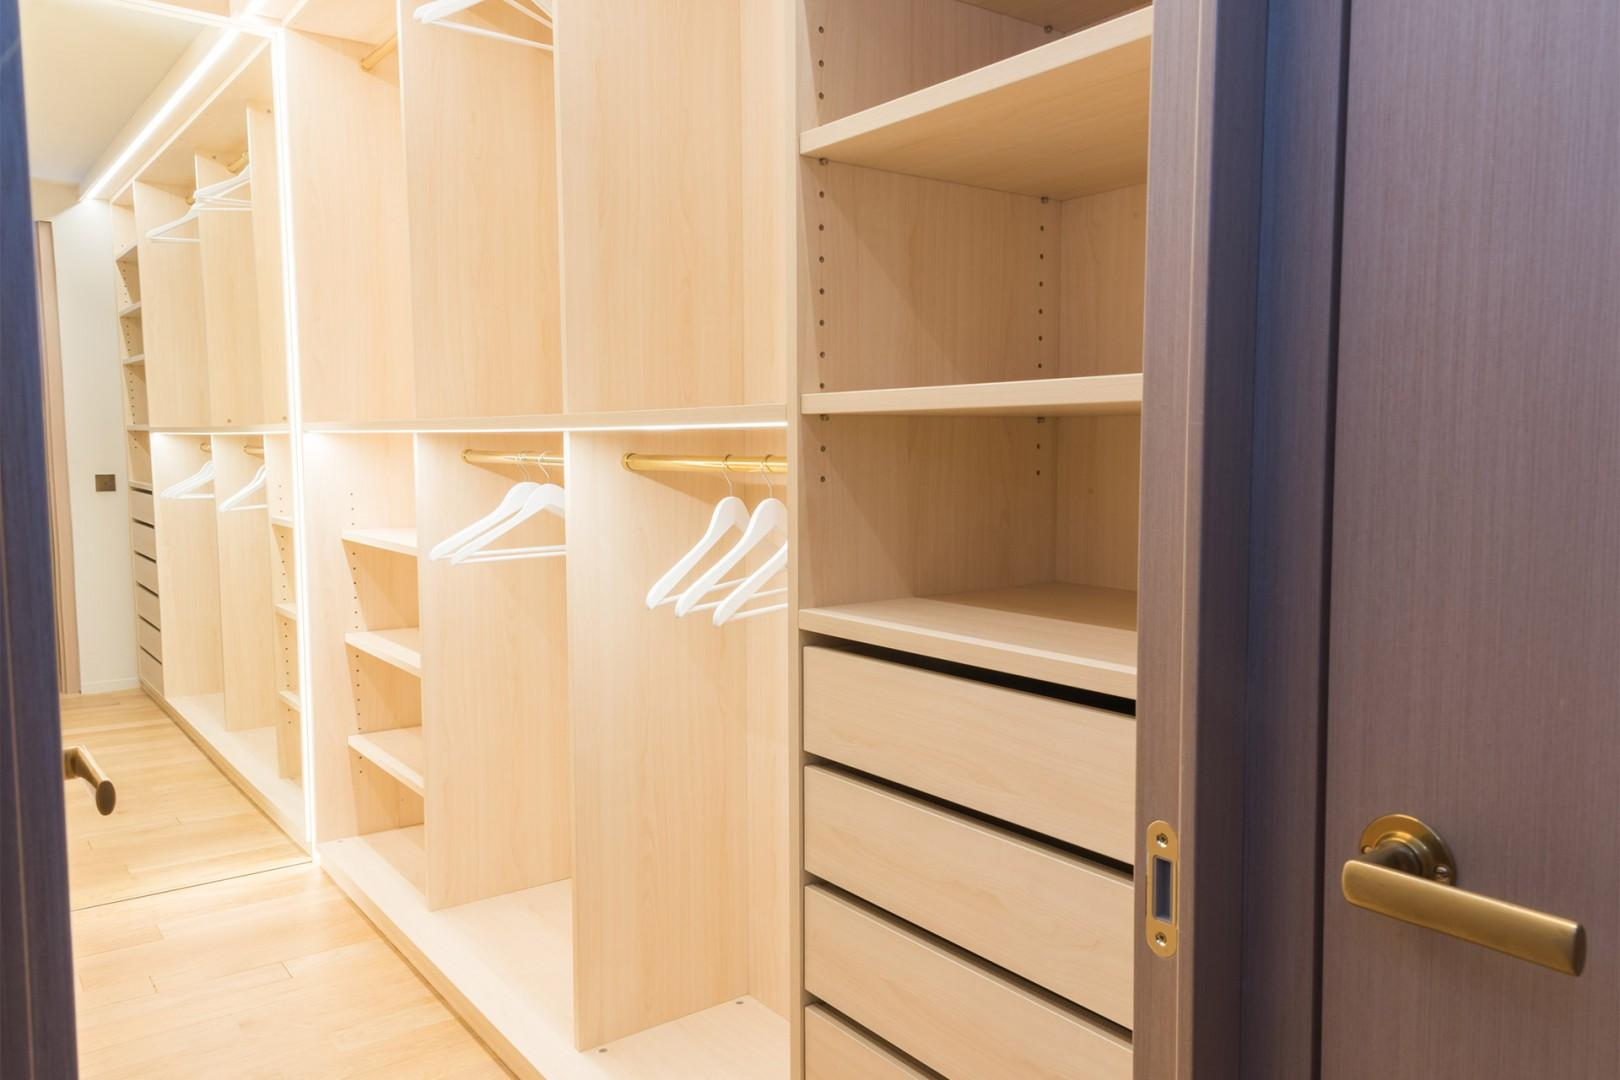 There is a practical walk-in closet connected to bedroom 2.